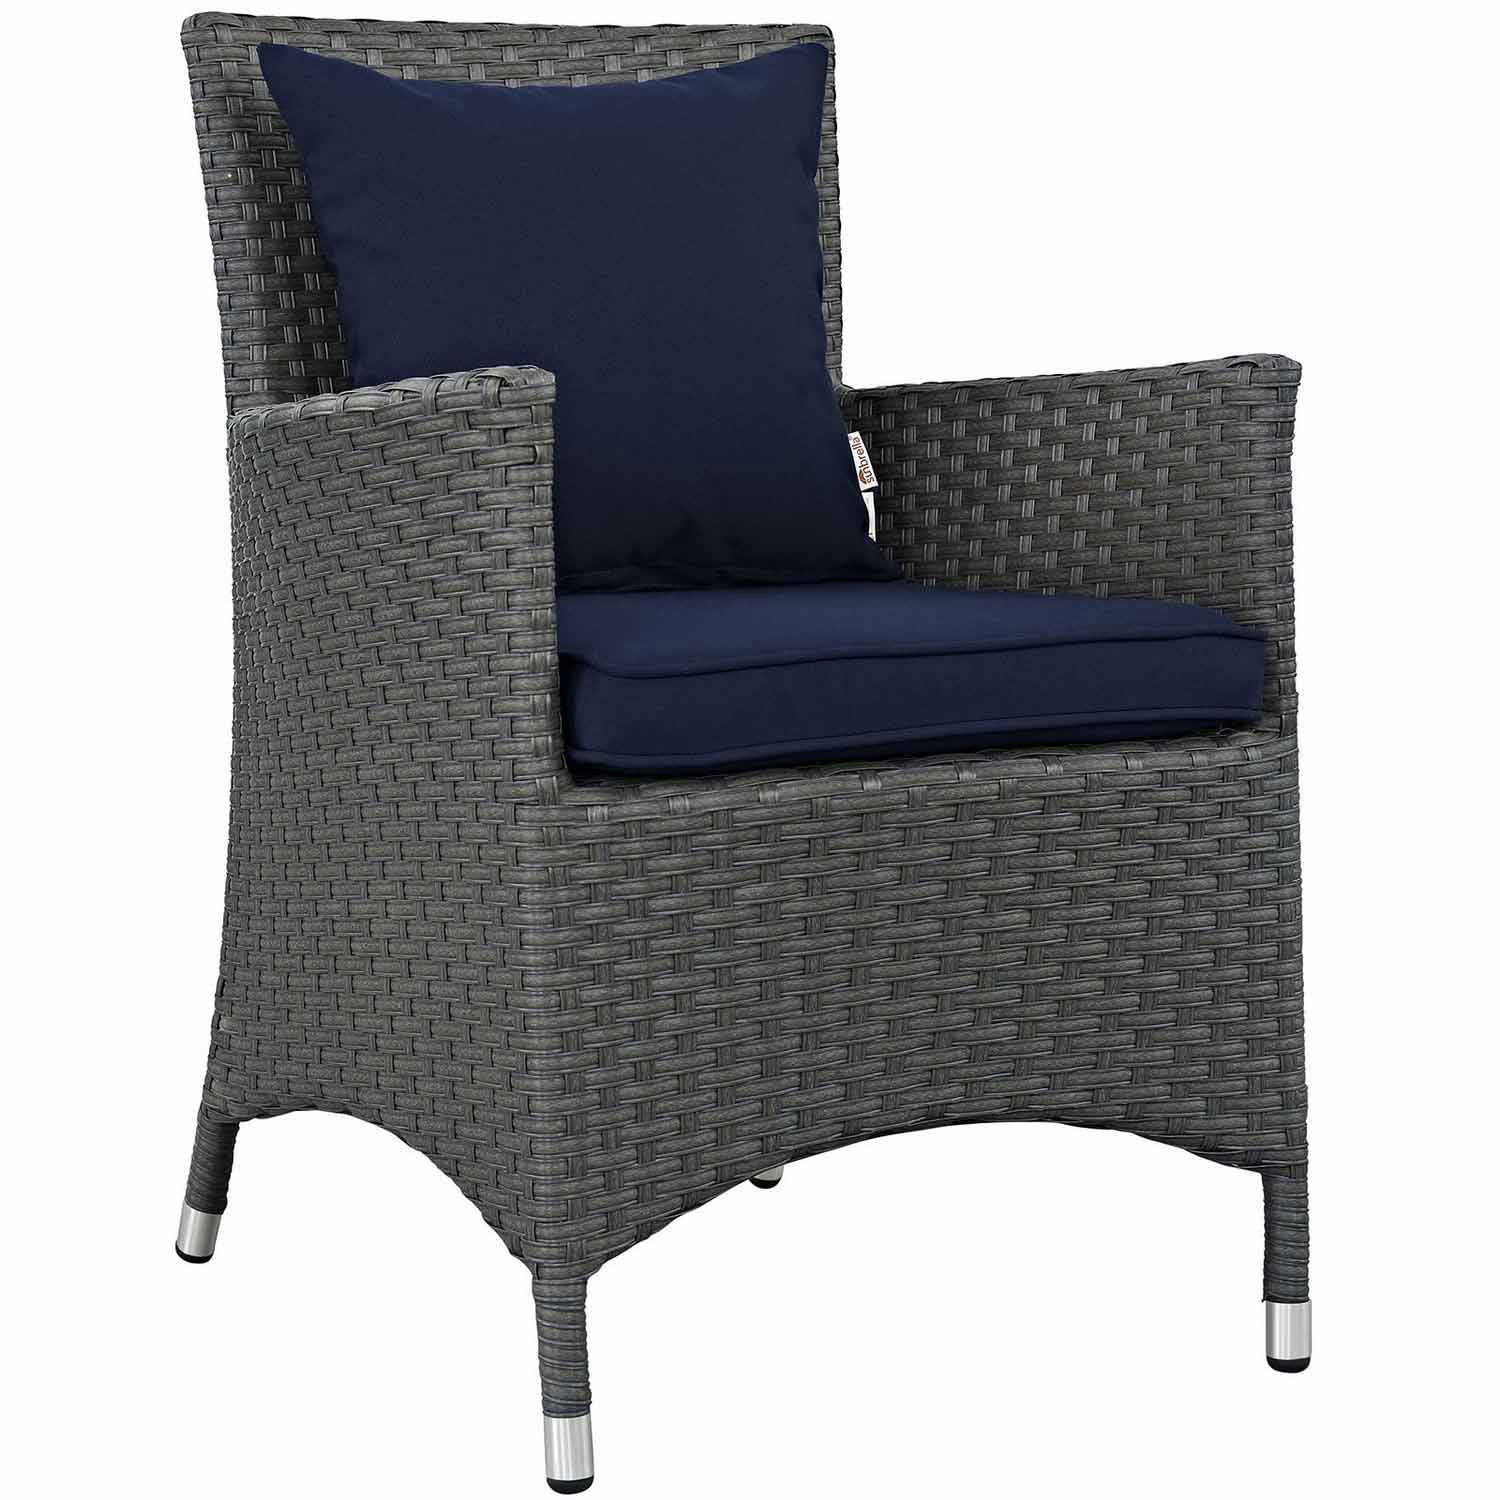 Modway Sojourn Dining Outdoor Patio Sunbrella Arm Chair - Canvas Navy